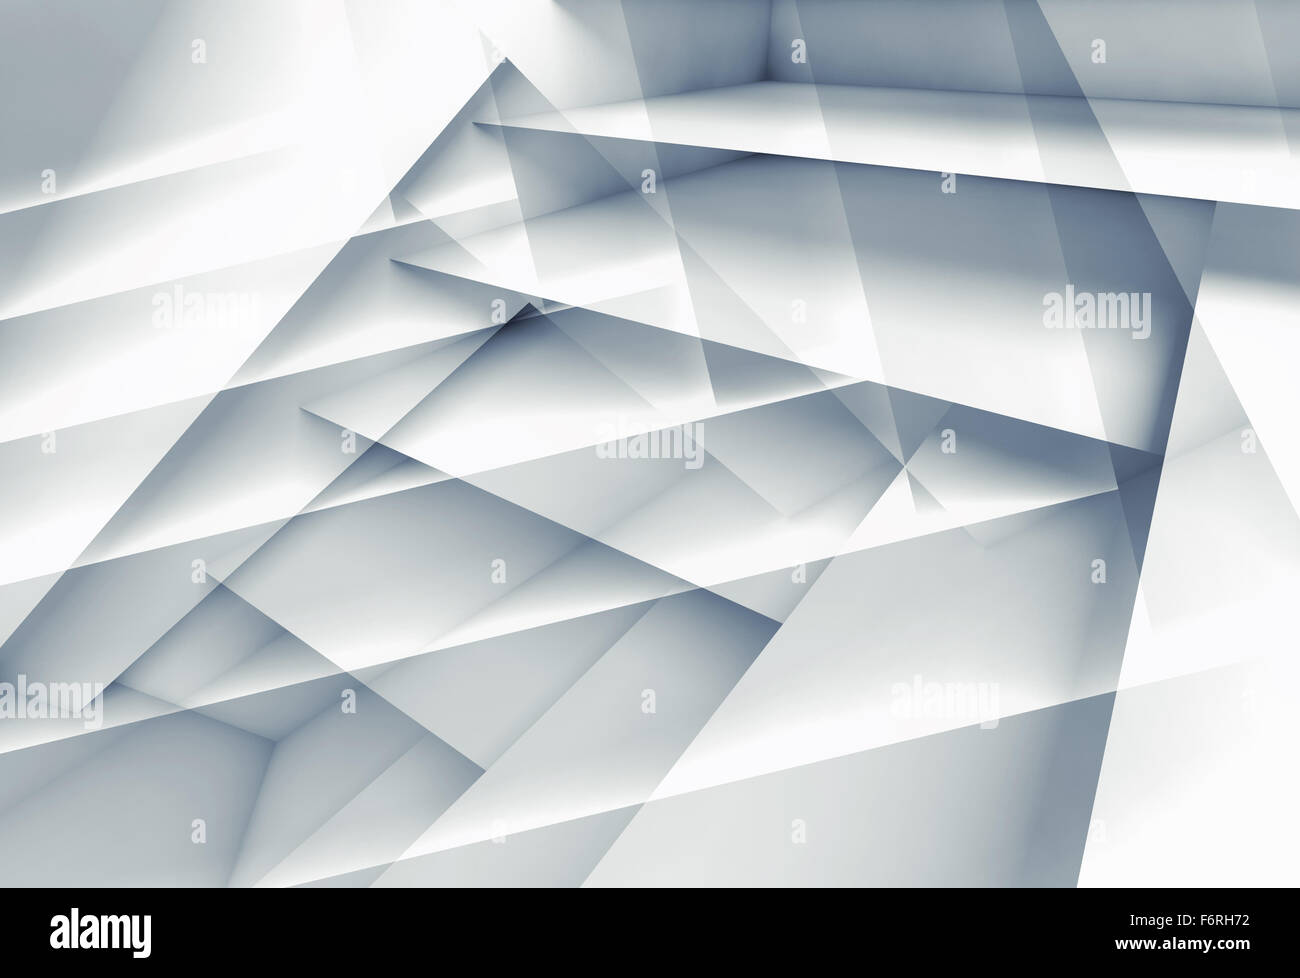 Abstract digital background with multi layered structures, 3d illustration - Stock Image